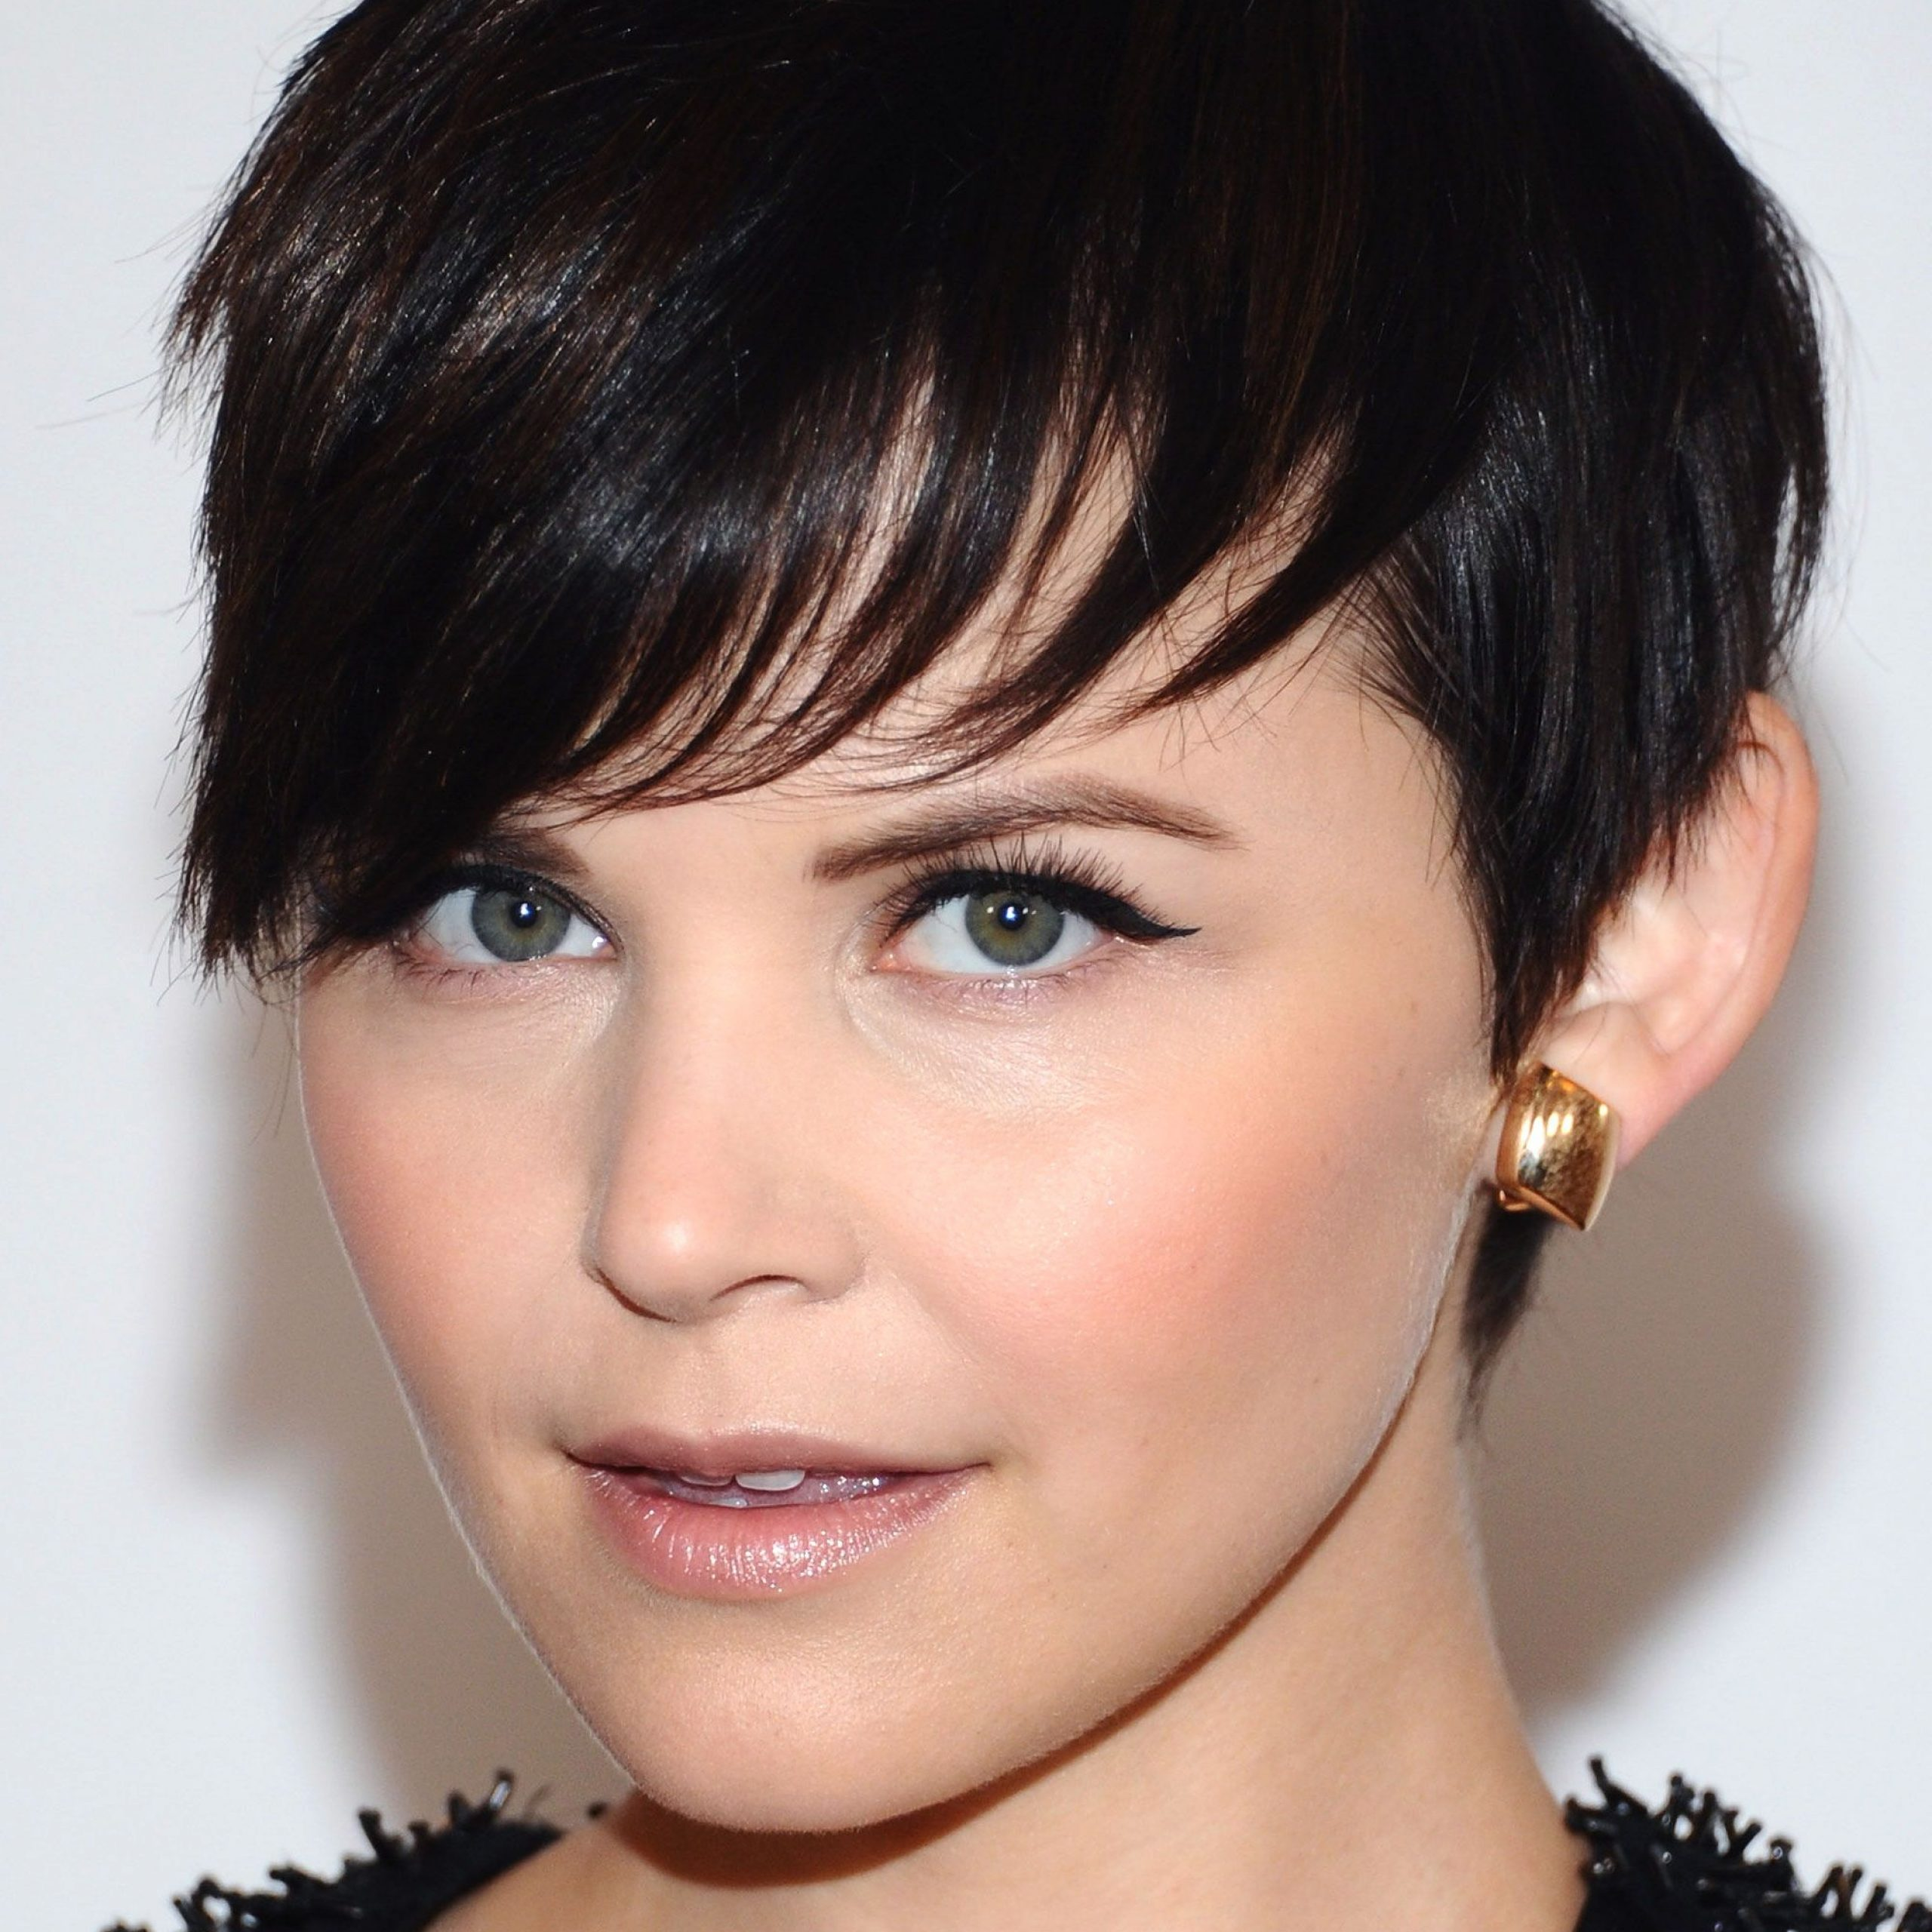 60+ Pixie Cuts We Love For 2020 – Short Pixie Hairstyles For Popular Edgy & Chic Short Curls Pixie Haircuts (View 9 of 20)